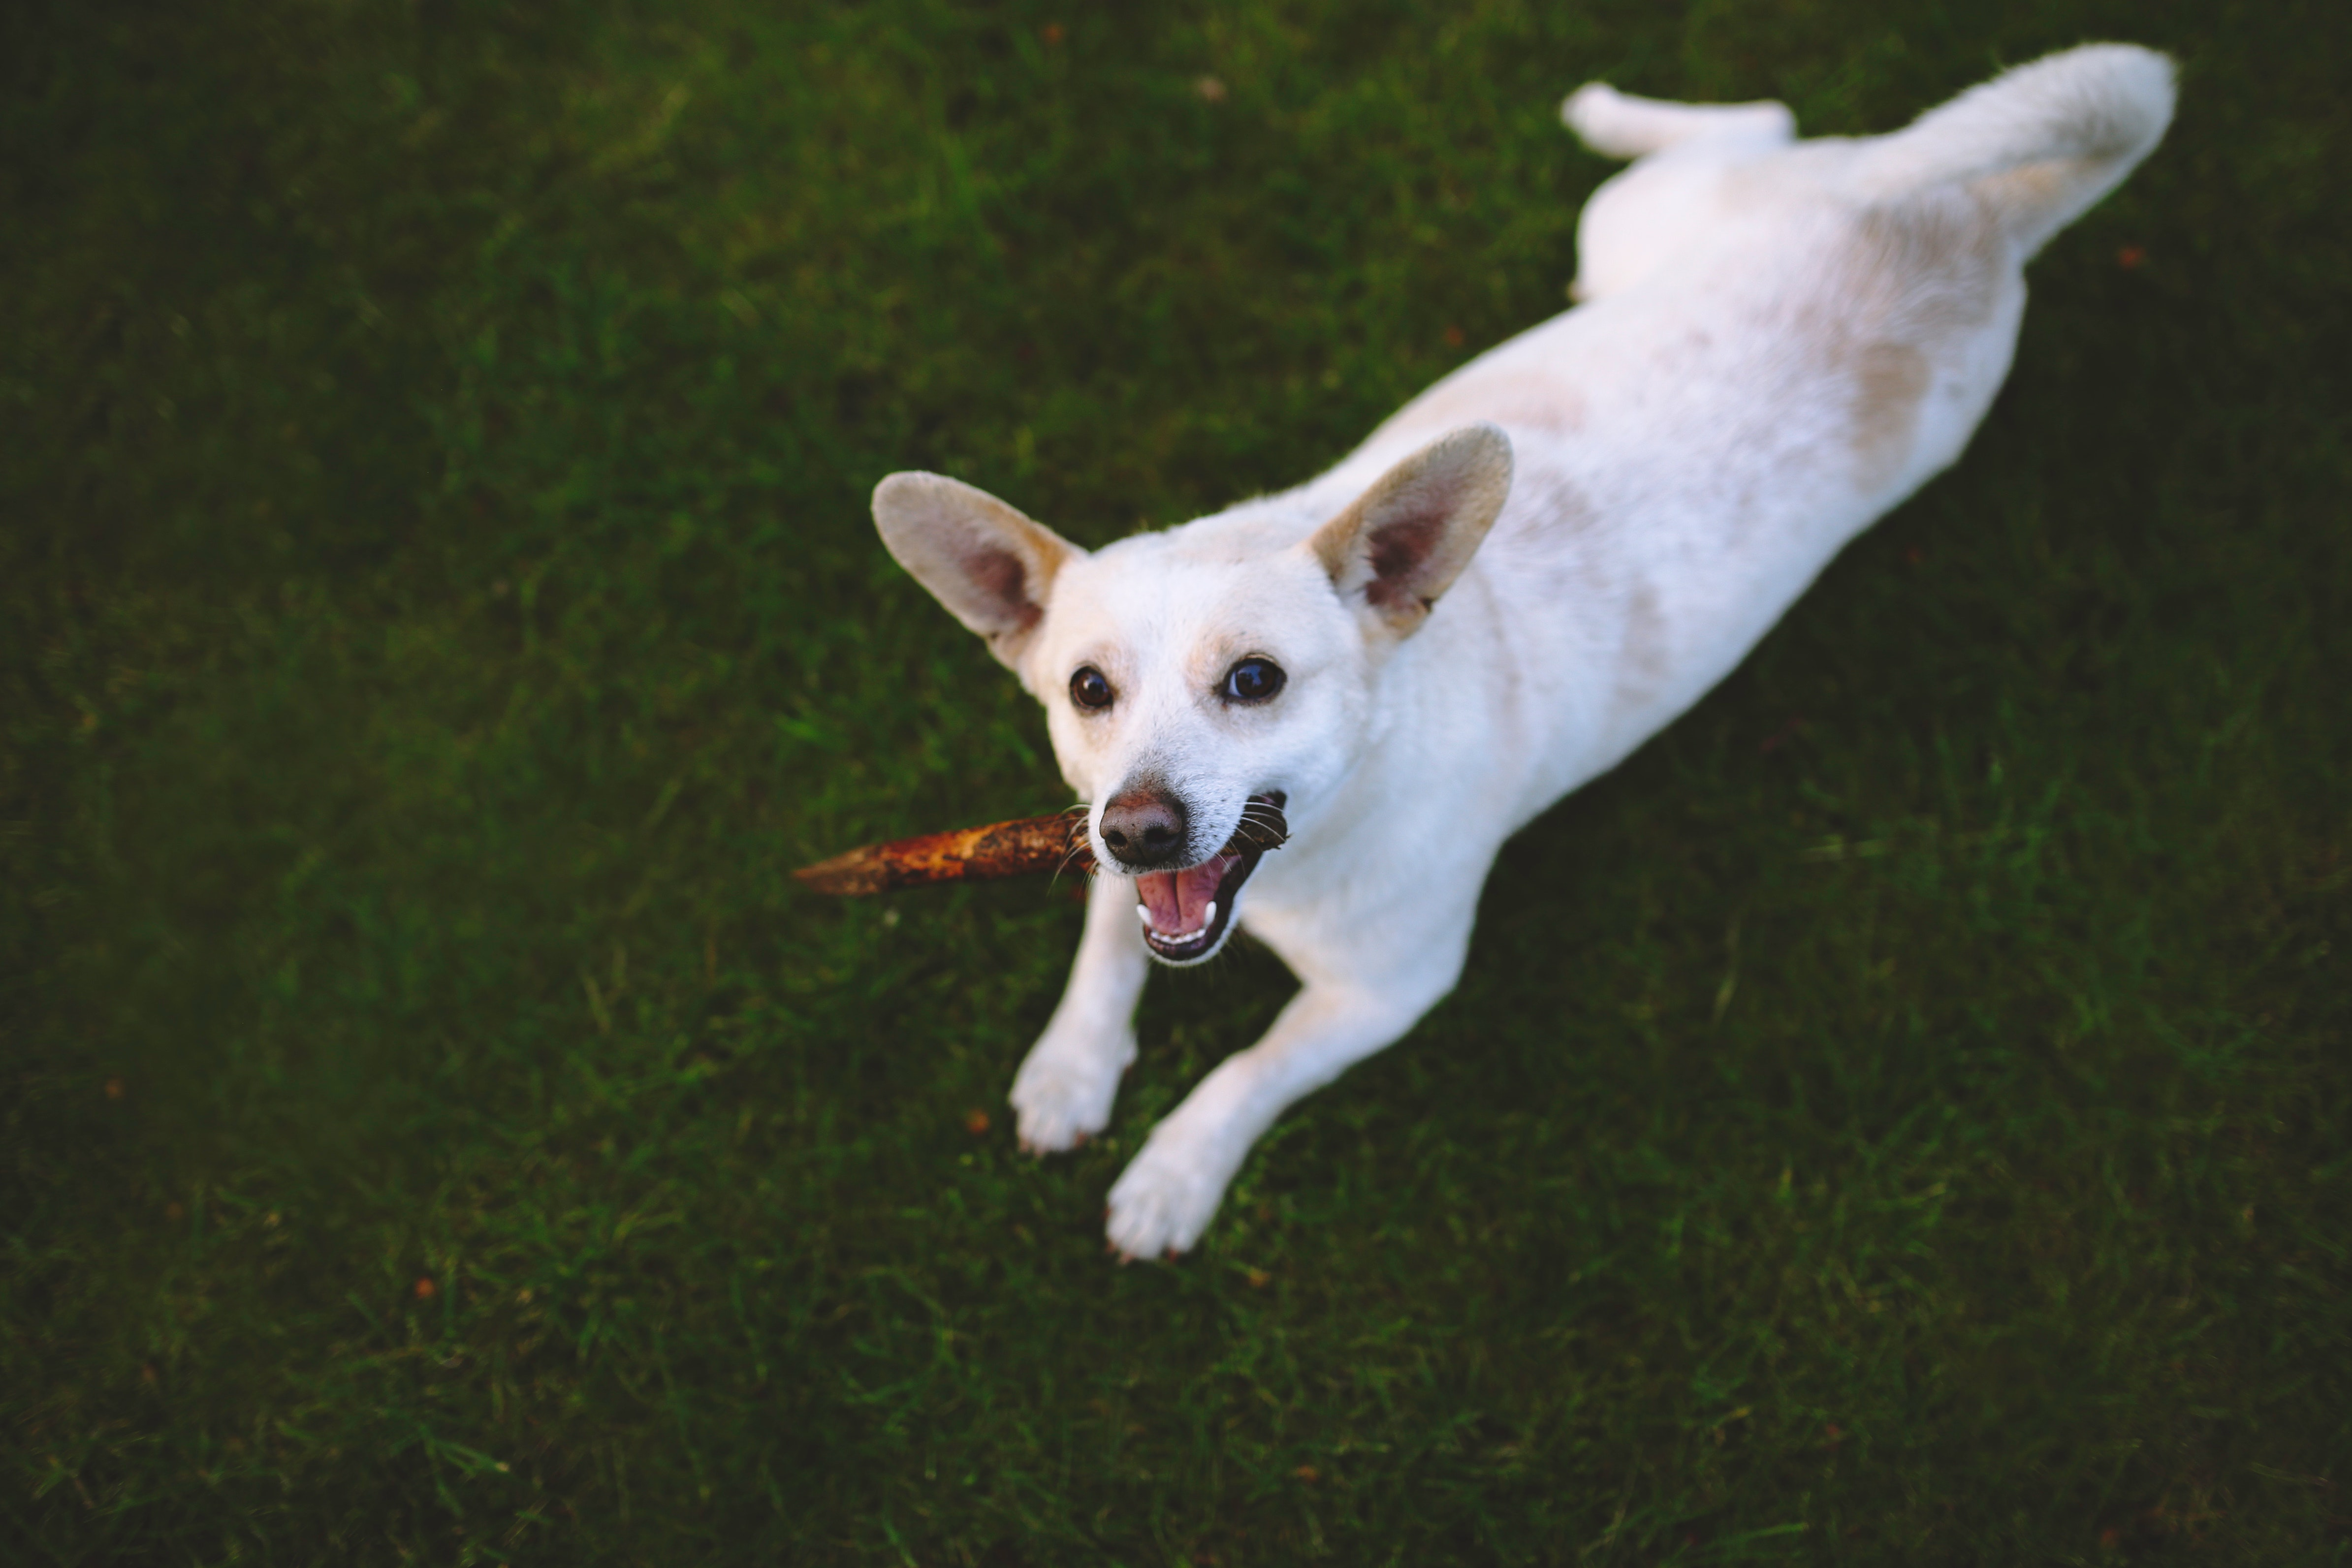 Dog on the grass photo